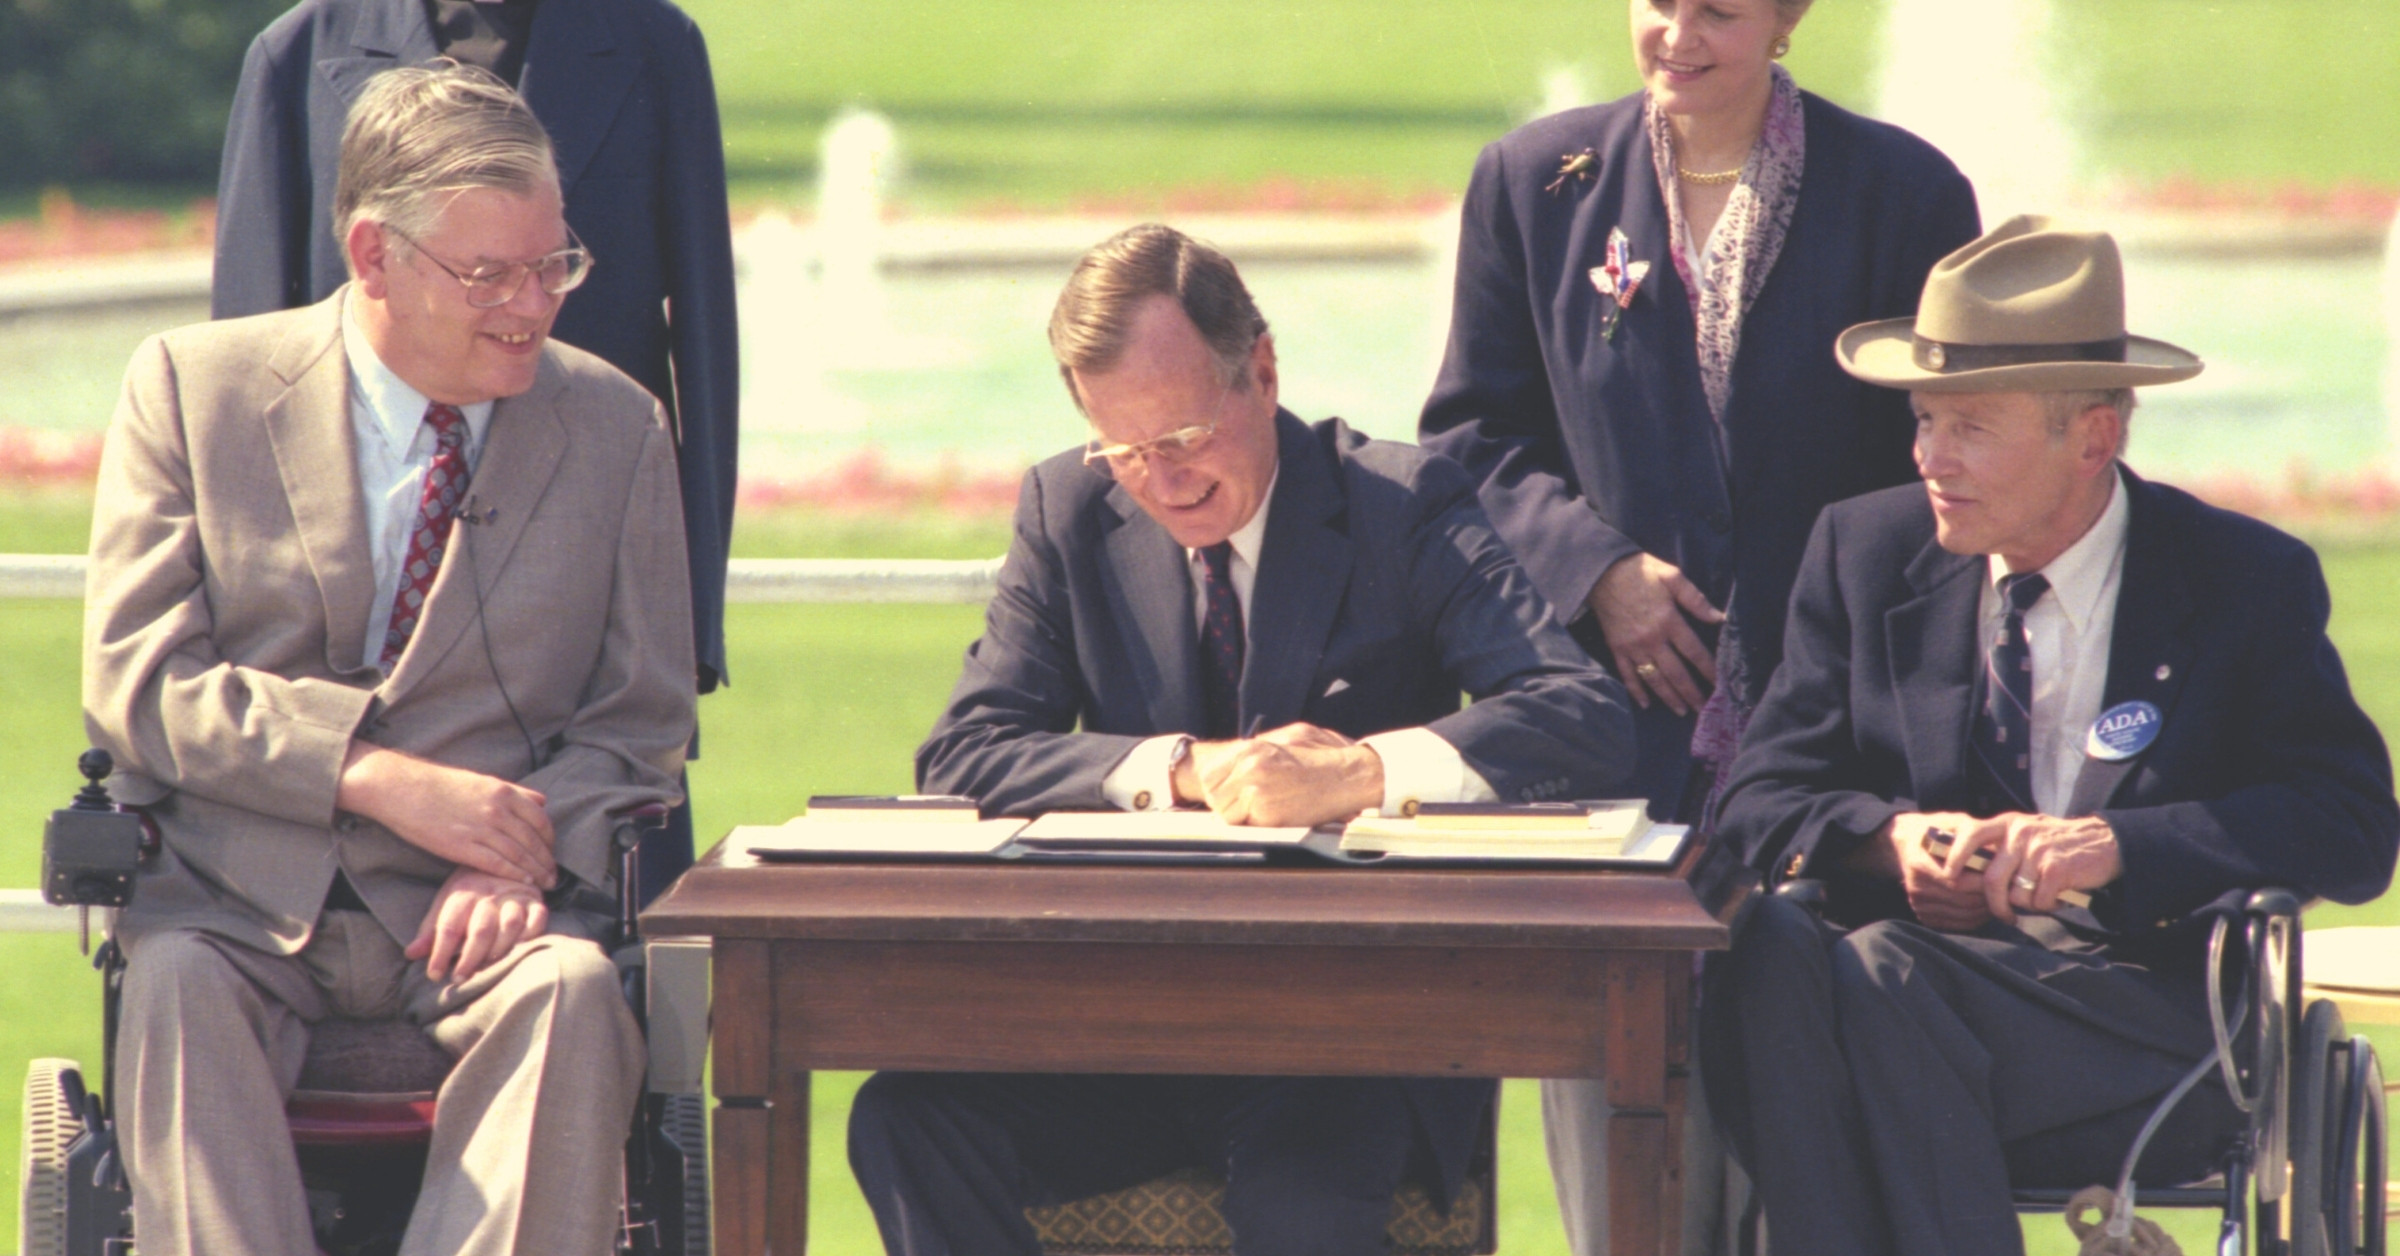 President George Bush signs the ADA in a grassy outdoor setting, as several people watch.